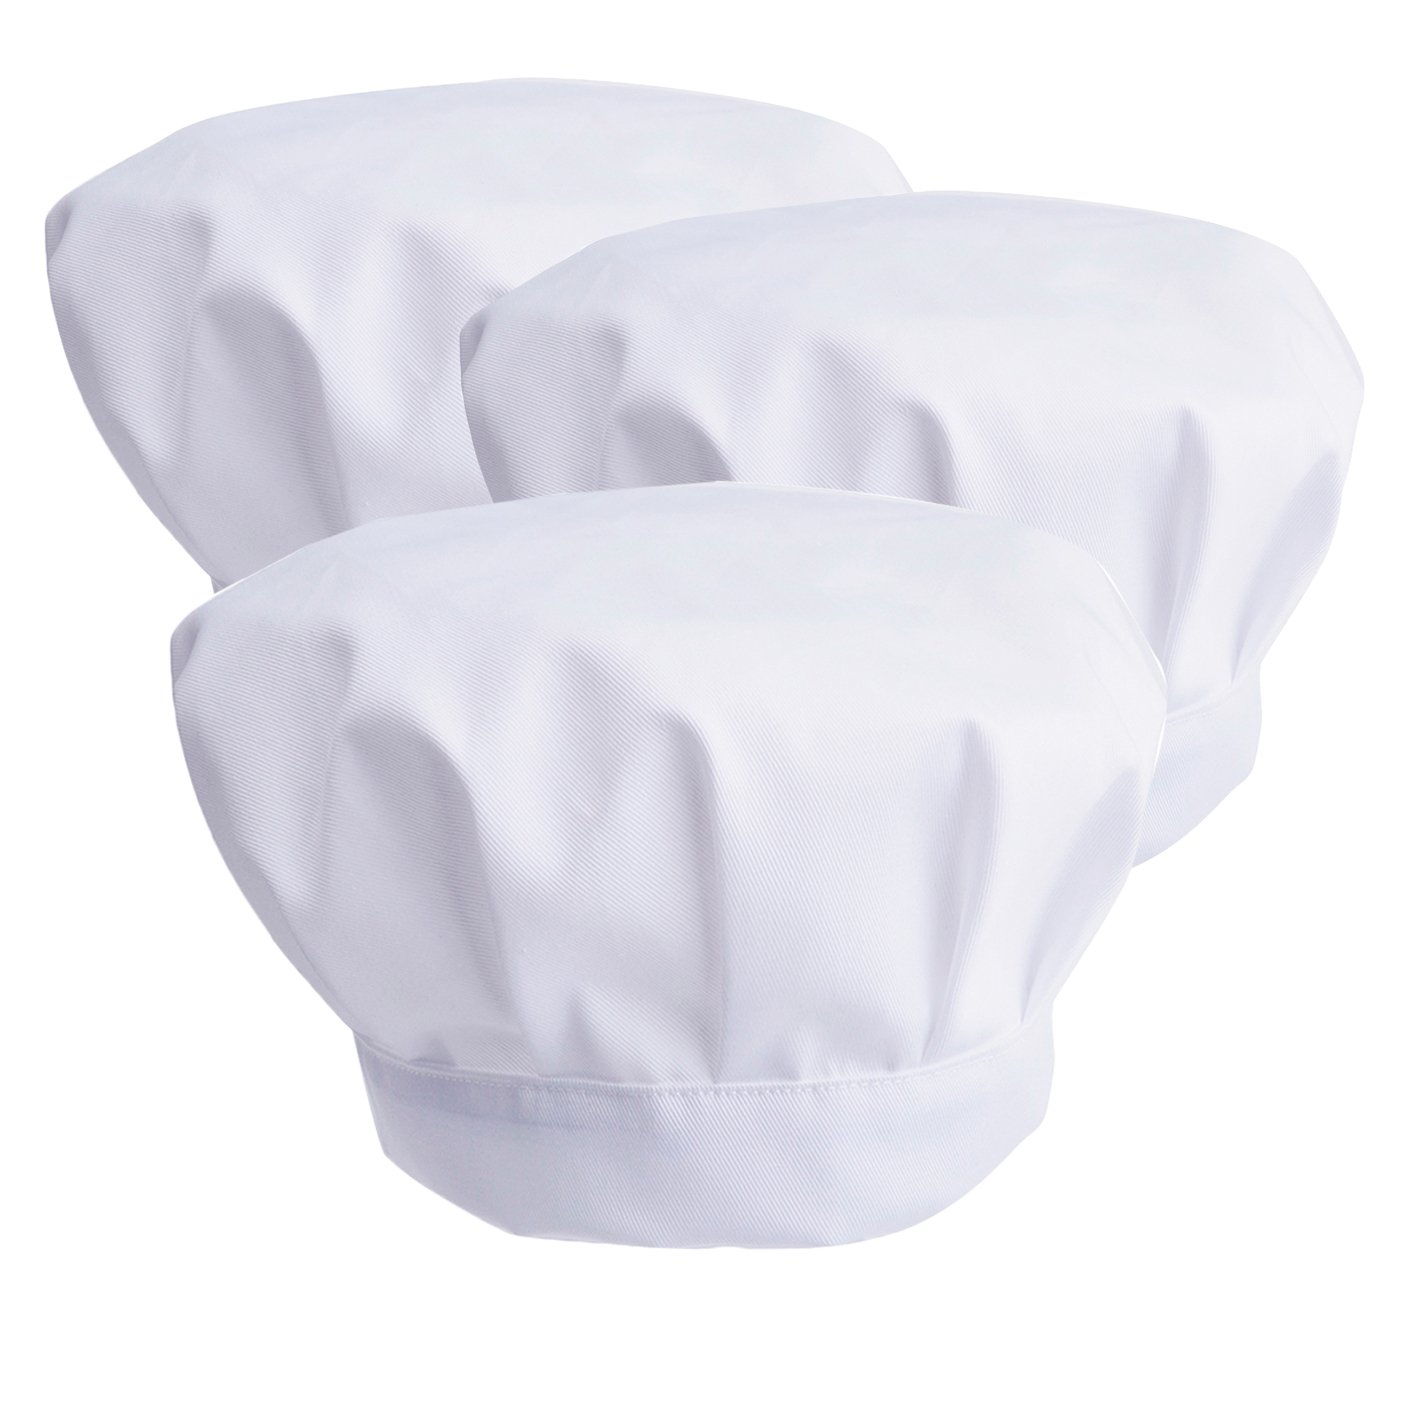 JoyFamily Chef Hats with Comfortable Durable Soft Materials and Adjustable Size for Adults, Children (3 Pack, White)